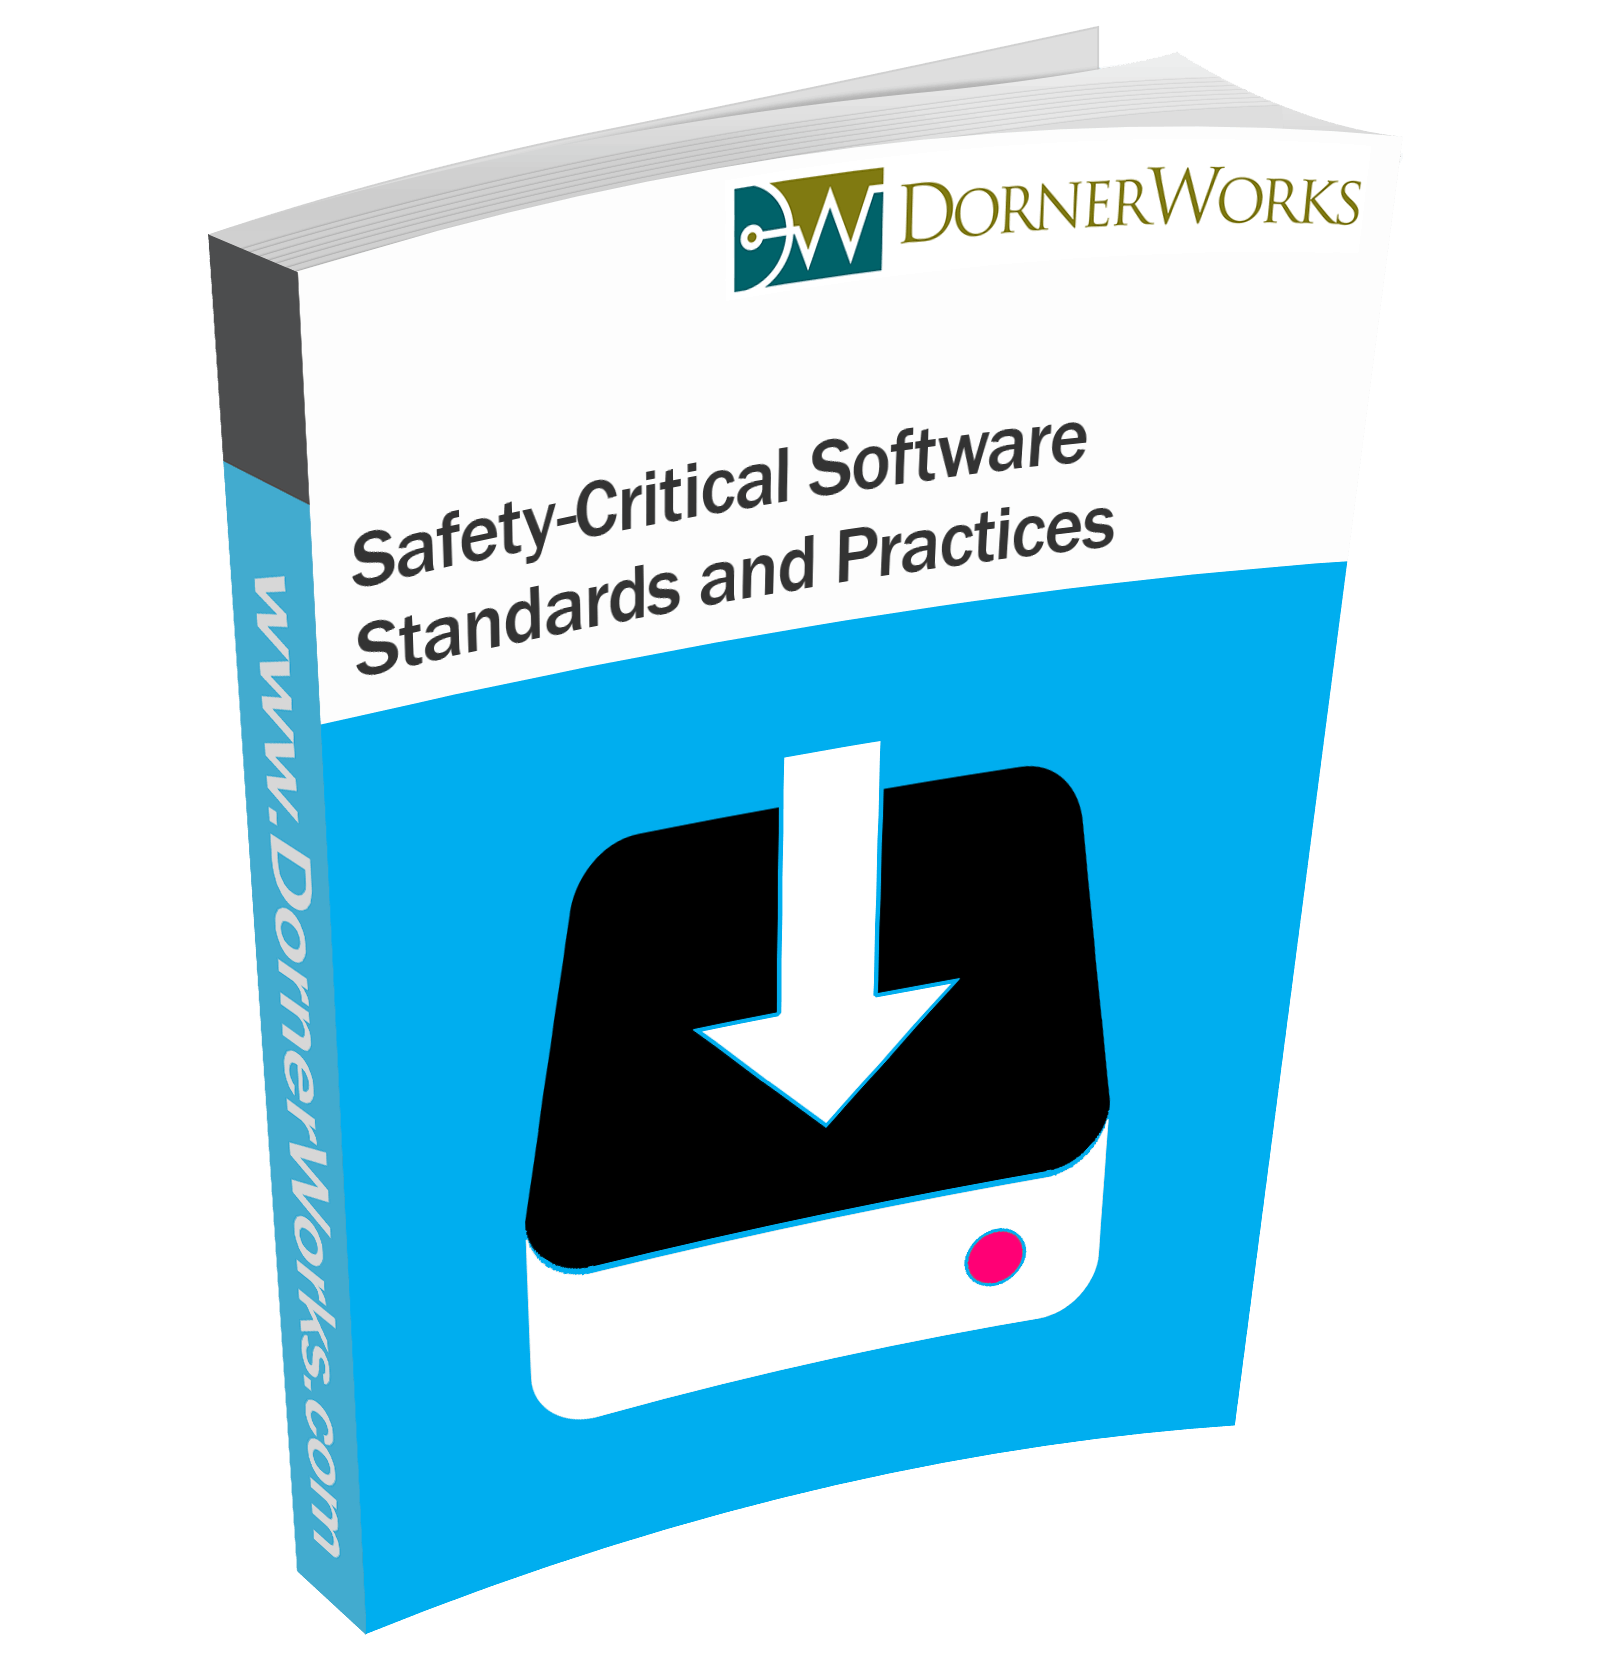 Safety-Critical Software Standards and Practices